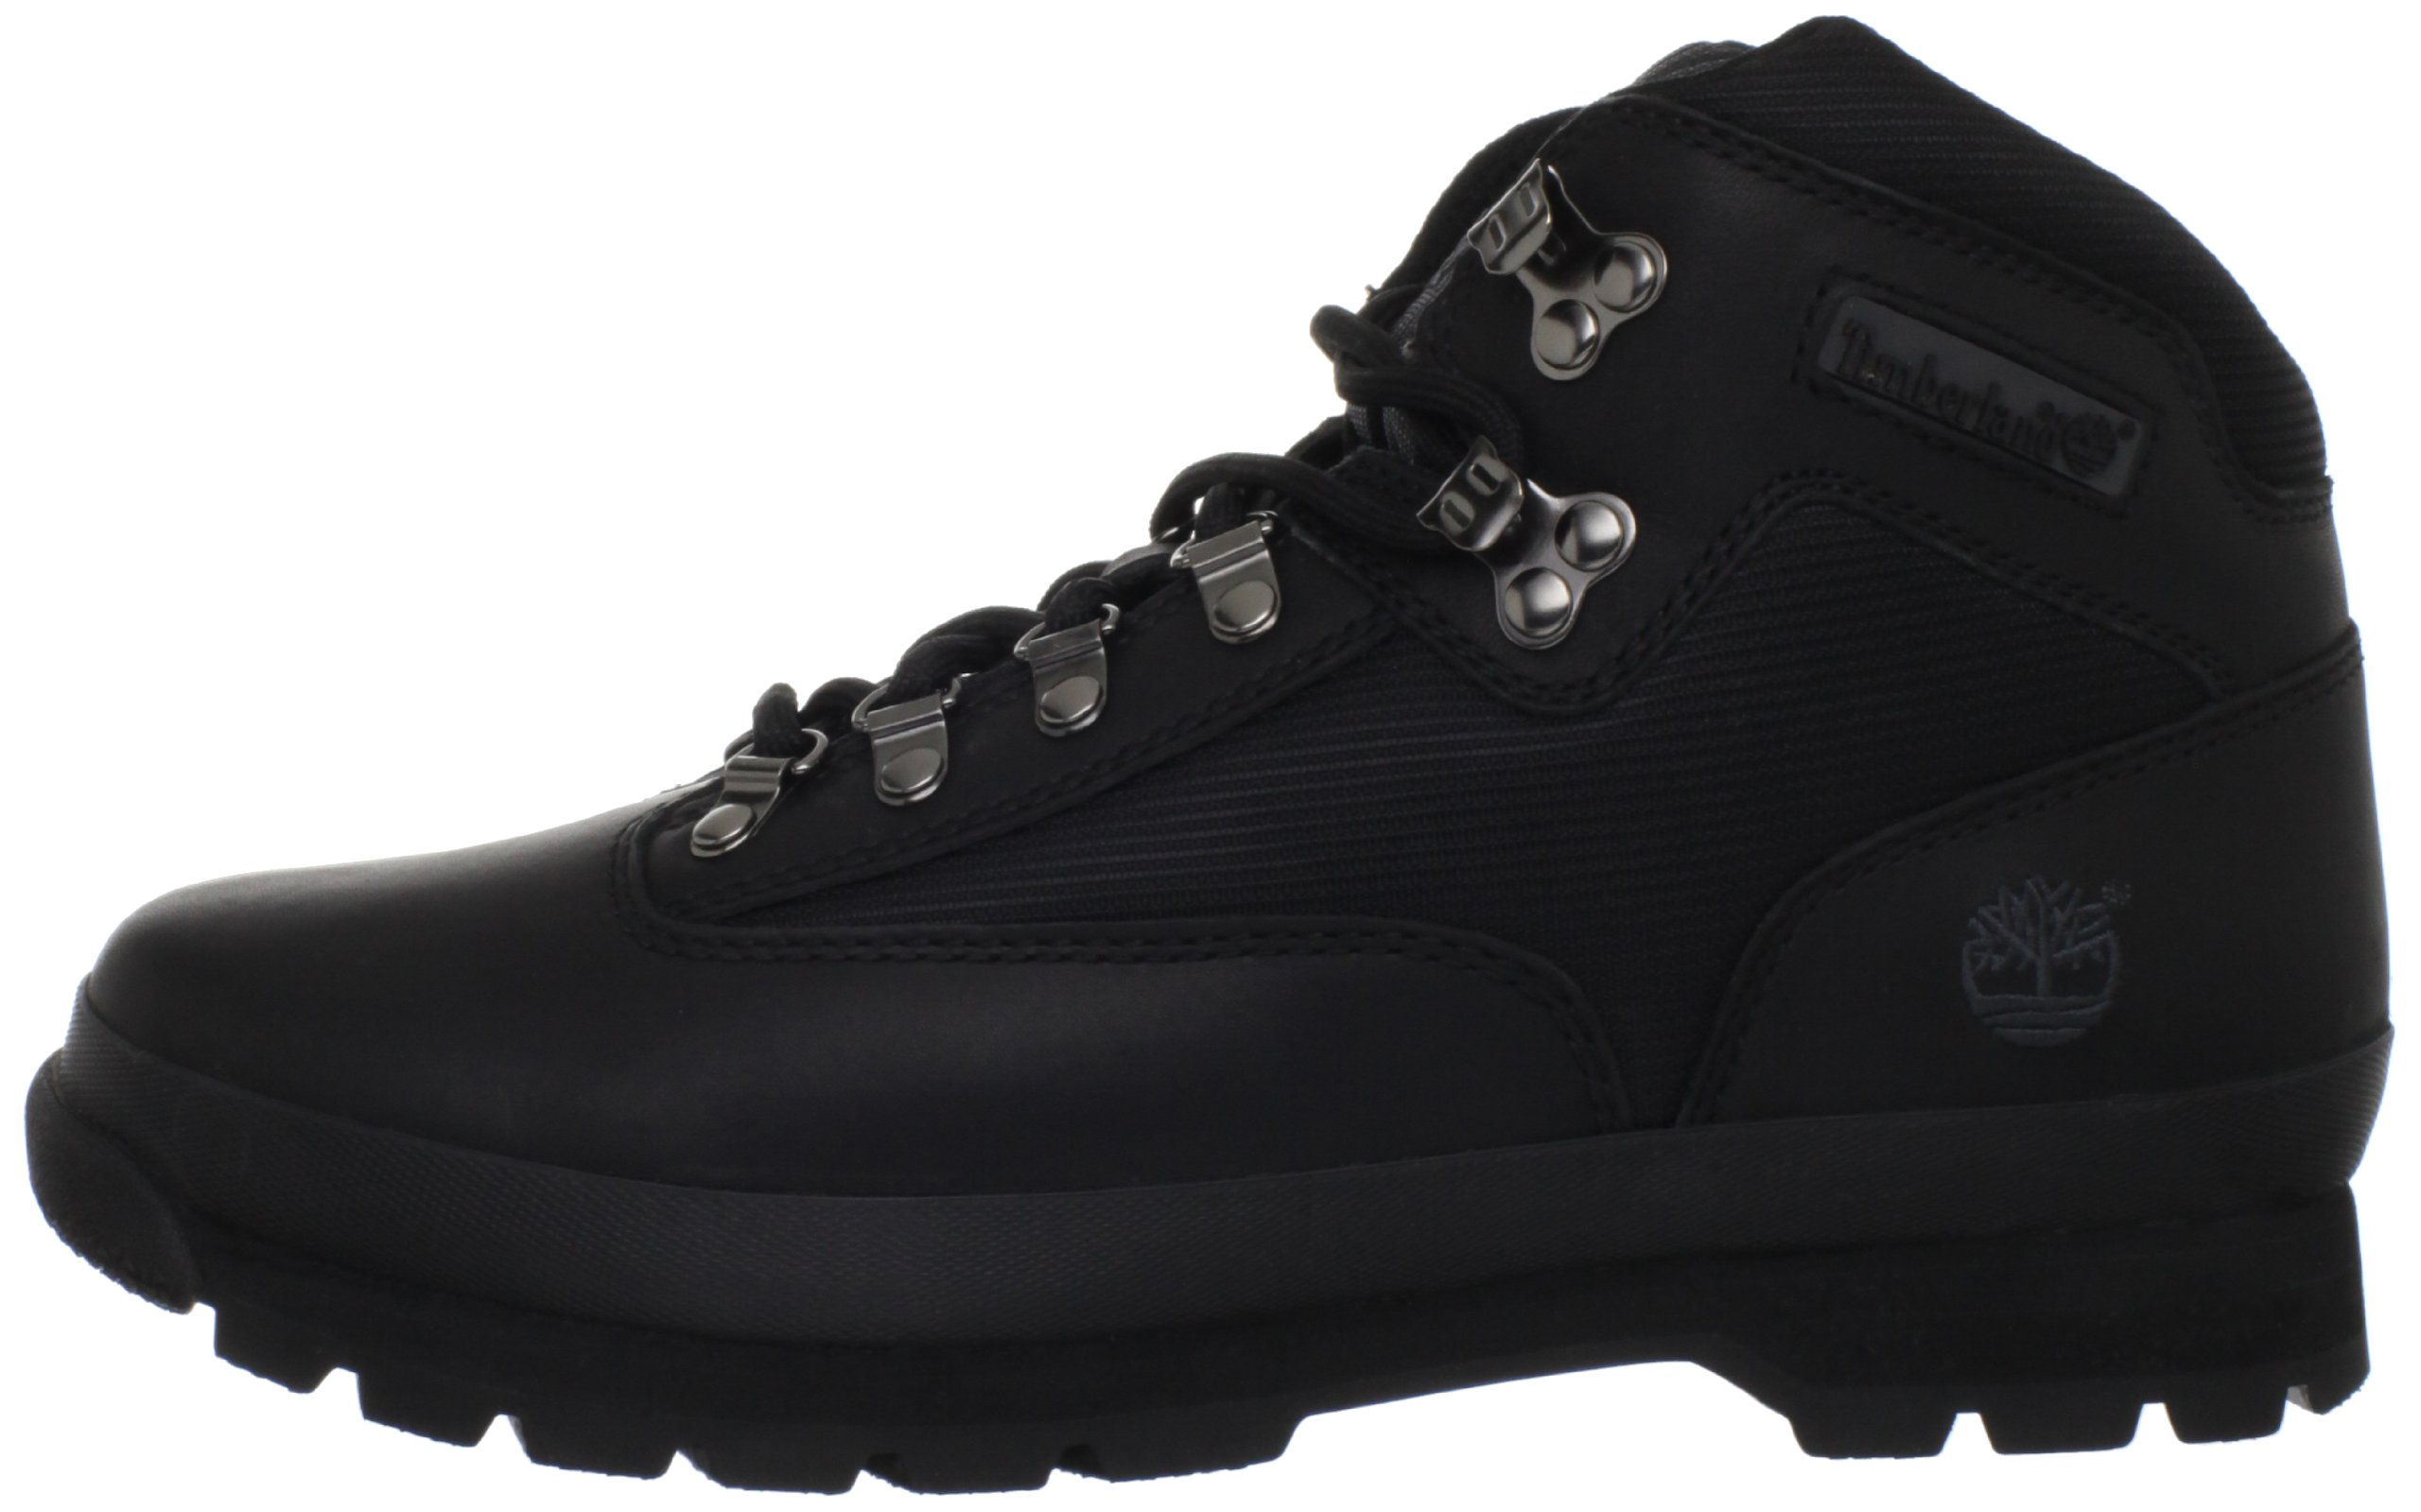 Timberland Men's Euro Boot,Black Smooth,10.5 M US by Timberland (Image #5)